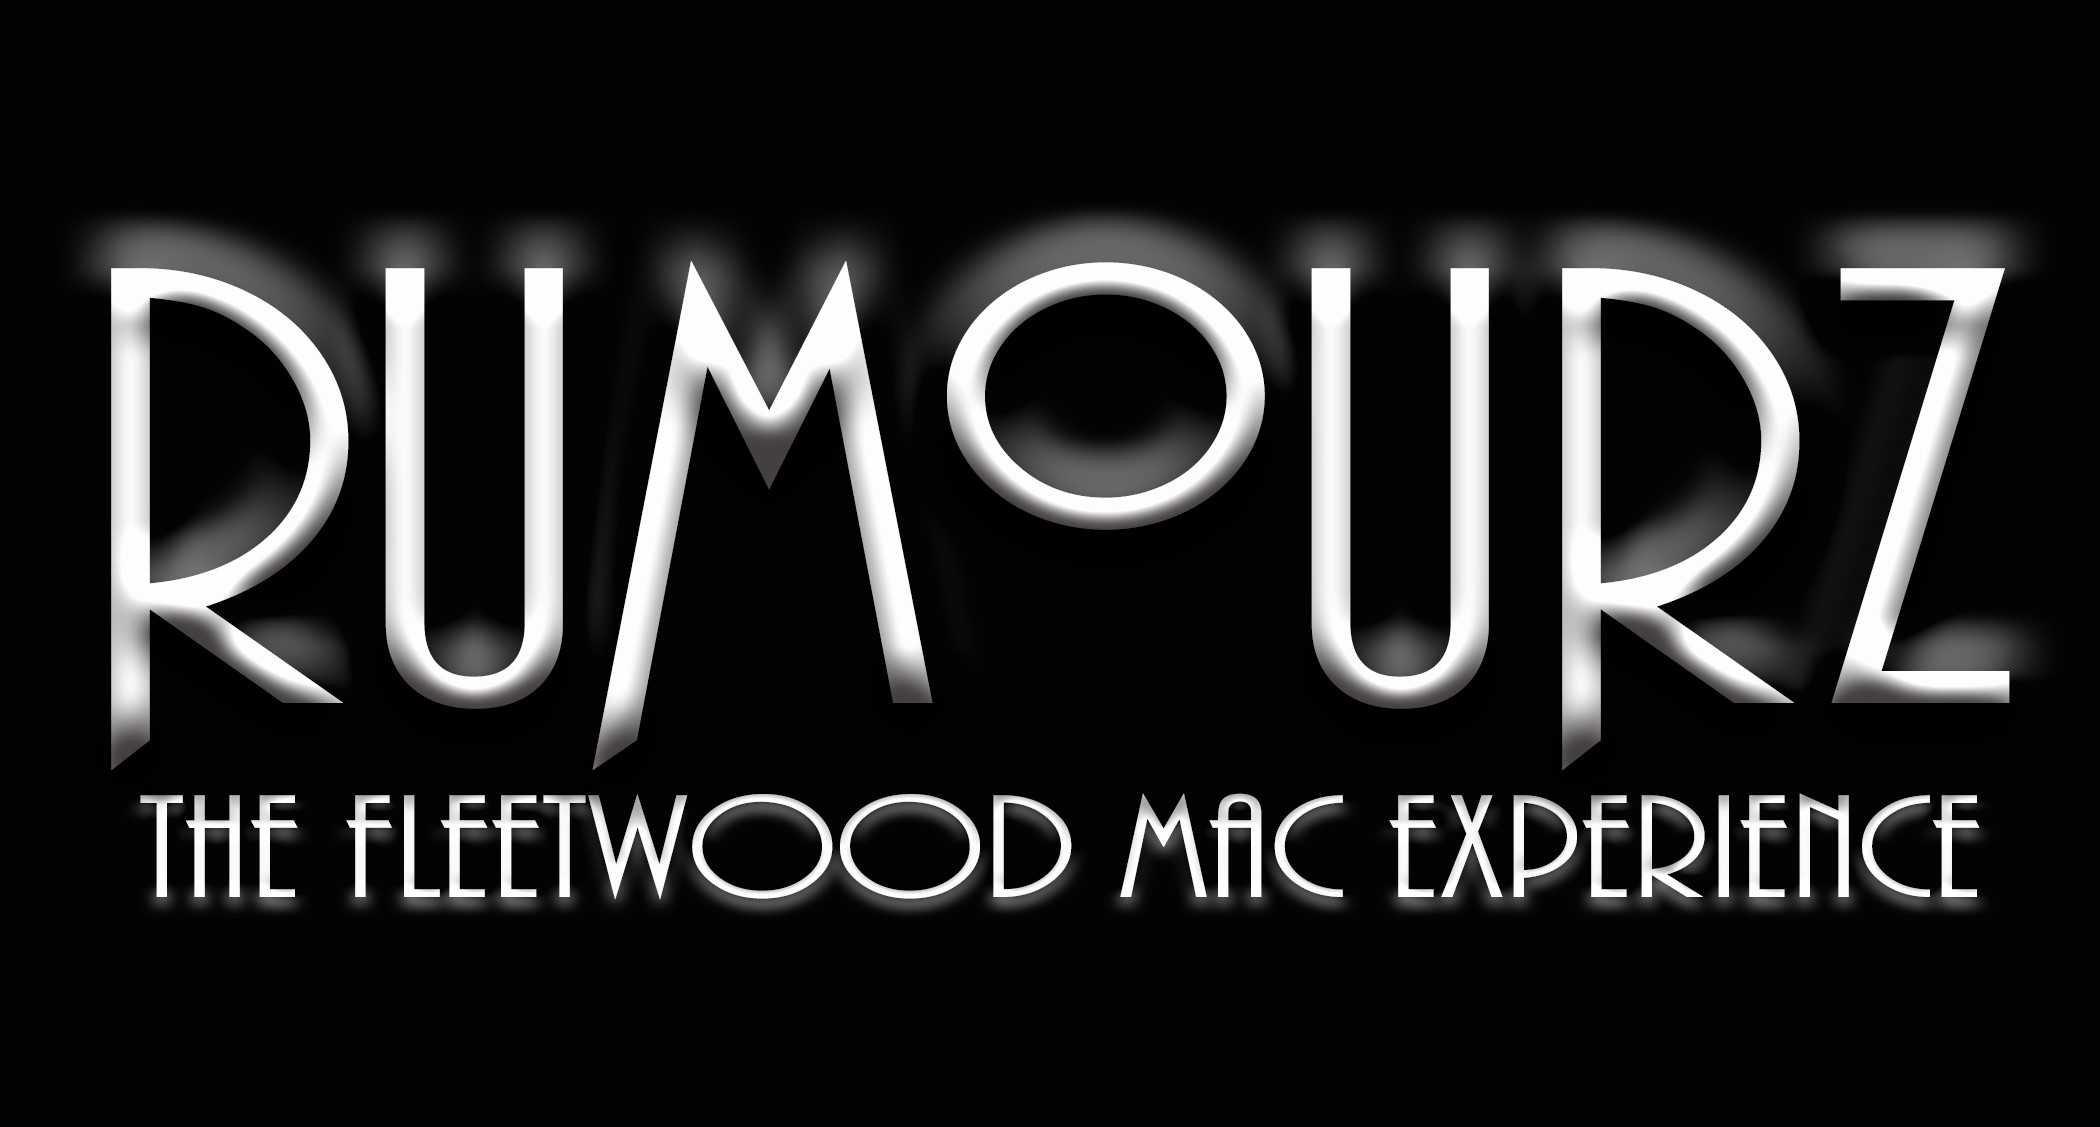 rumourz rumours fleetwood mac ithaca range nightlife concert tribute live music stevie nicks commons downtown